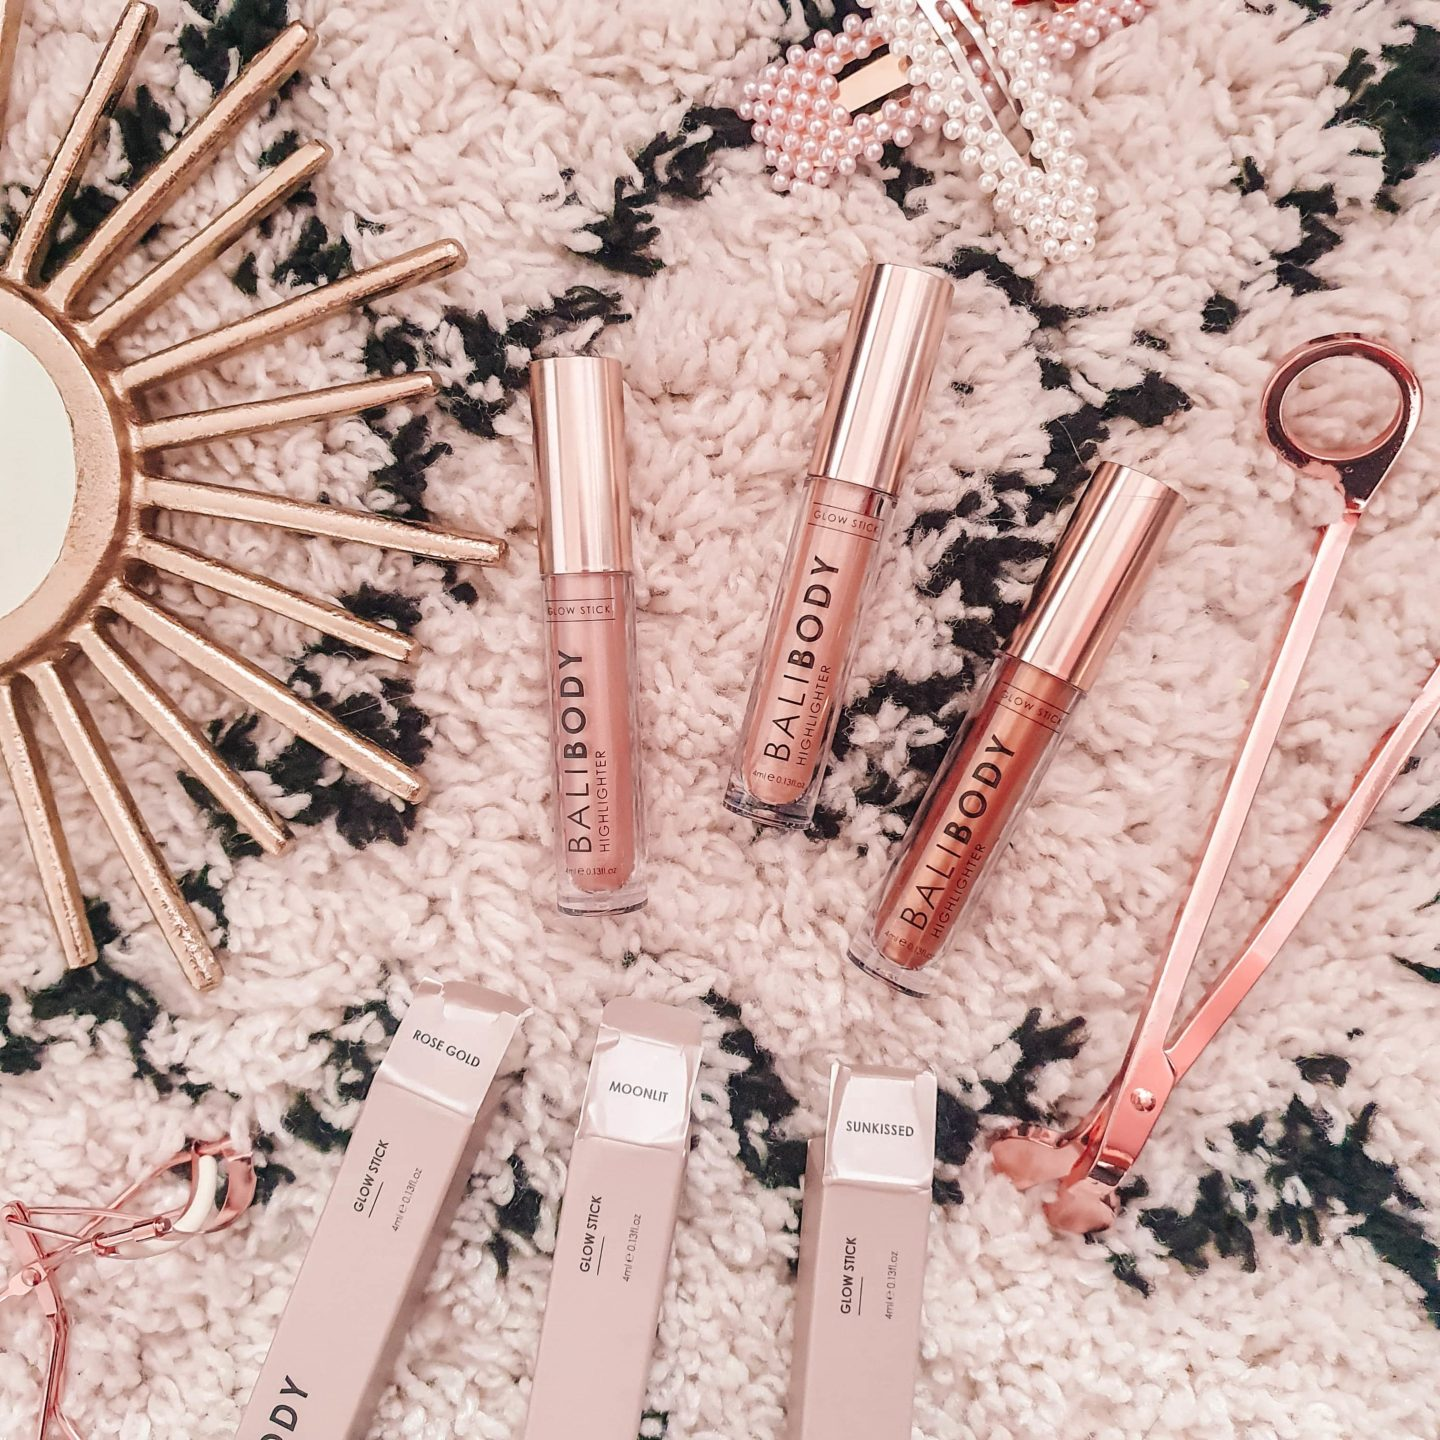 Bali Body Liquid Highlighter Sticks Review